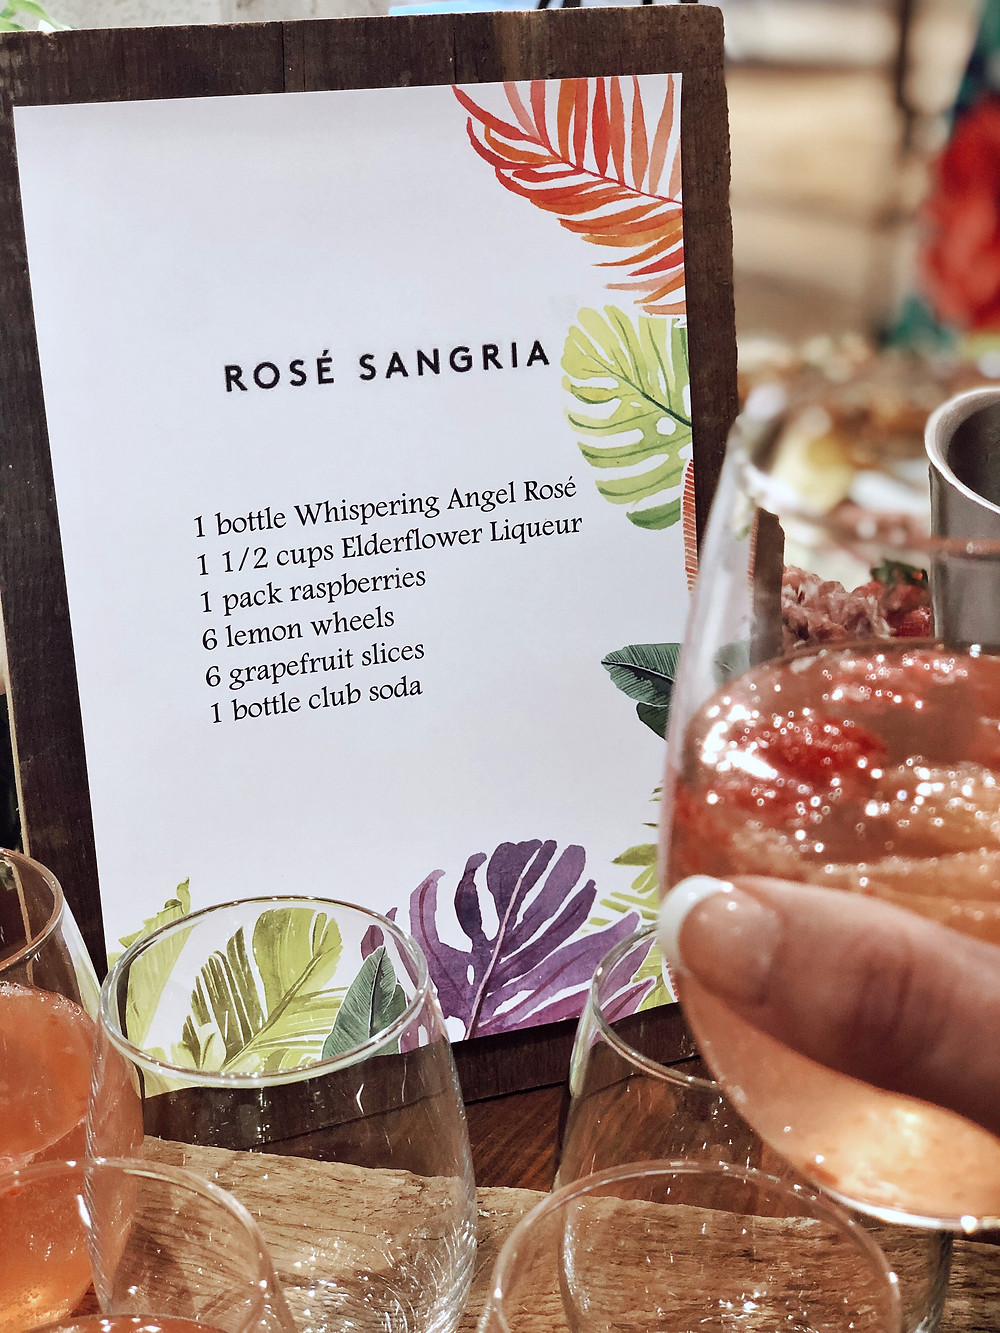 Anthropologie cocktail workshop rosé sangria recipe